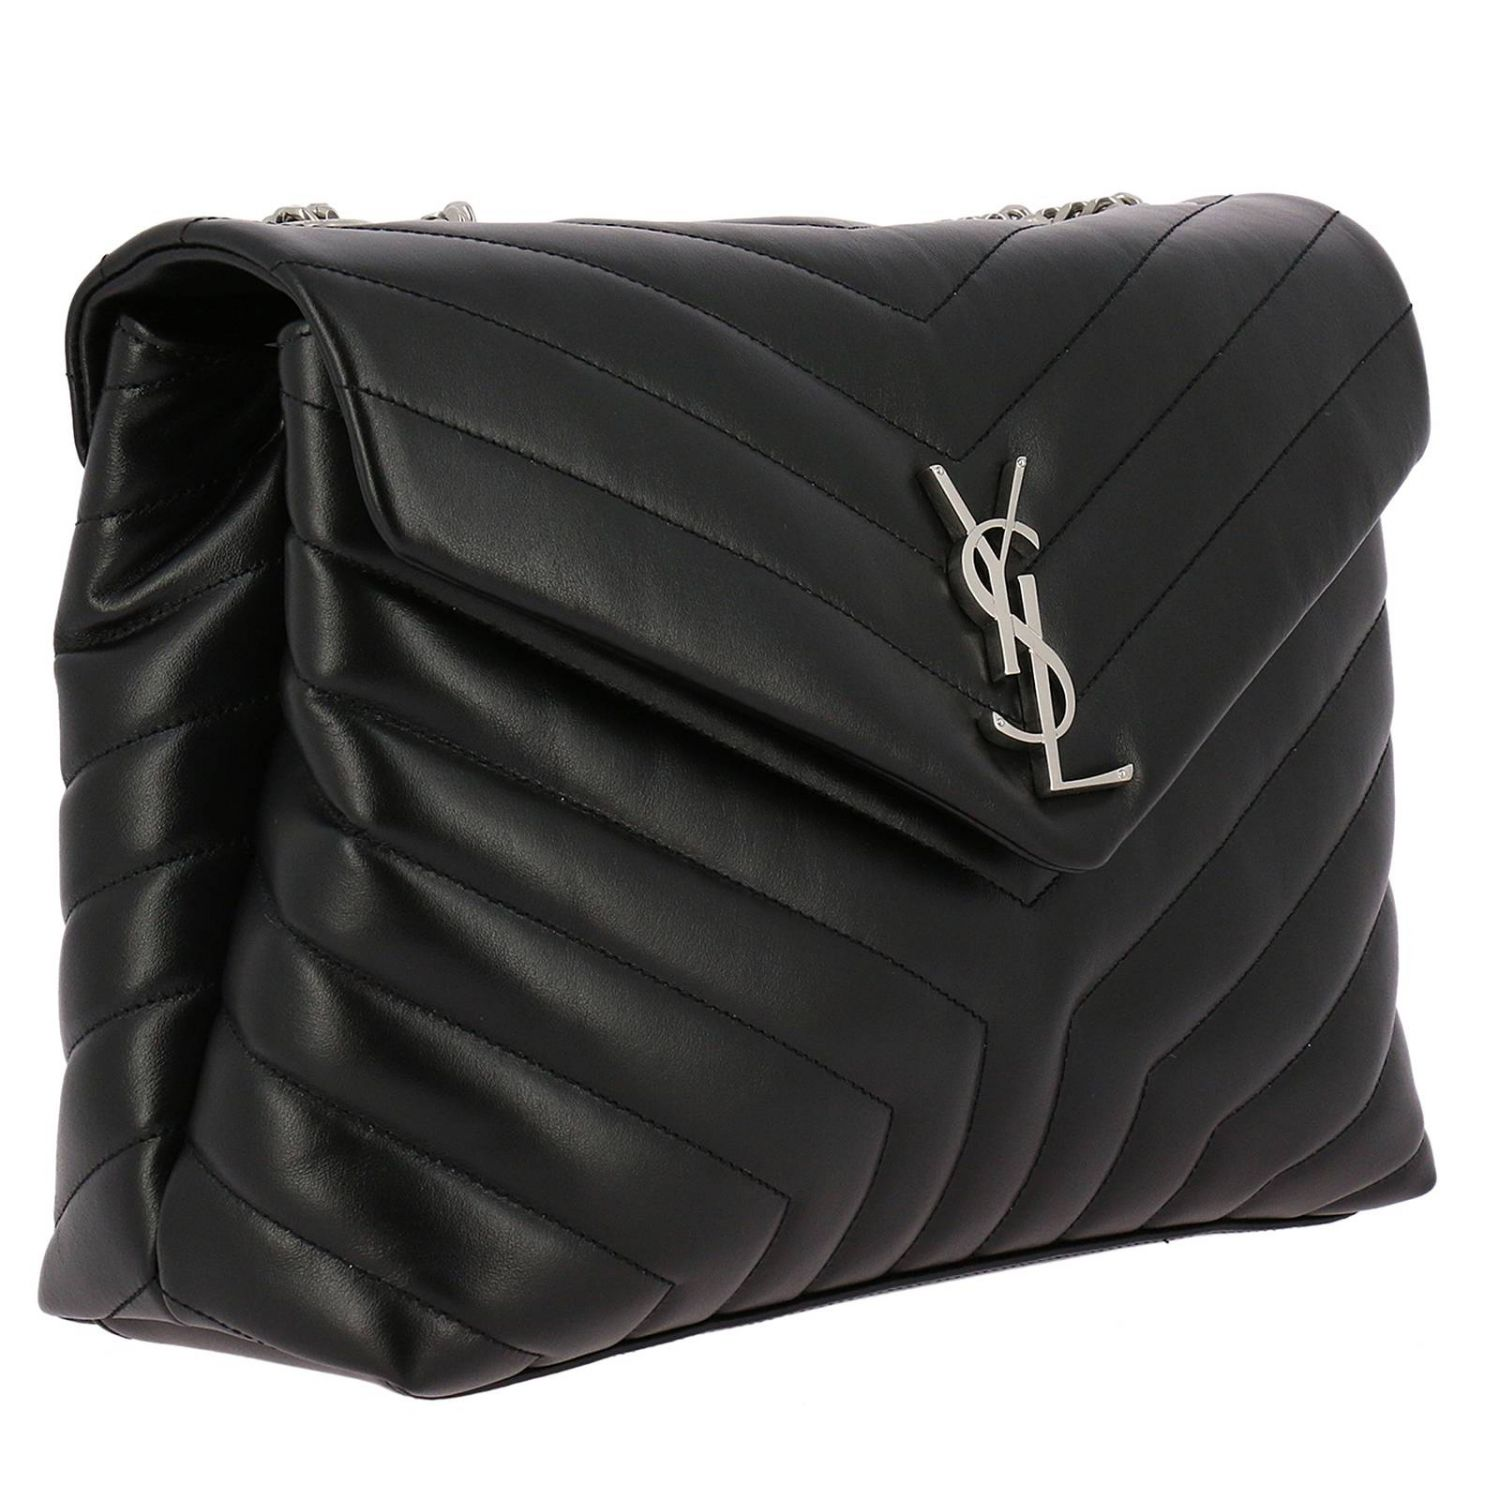 Ysl Borse.Borsa Monogram Ysl Toy Luo Medium In Pelle Trapuntata Borse A Tracolla Saint Laurent Donna Nero Borse A Tracolla Saint Laurent 487216 Dv726 Giglio It